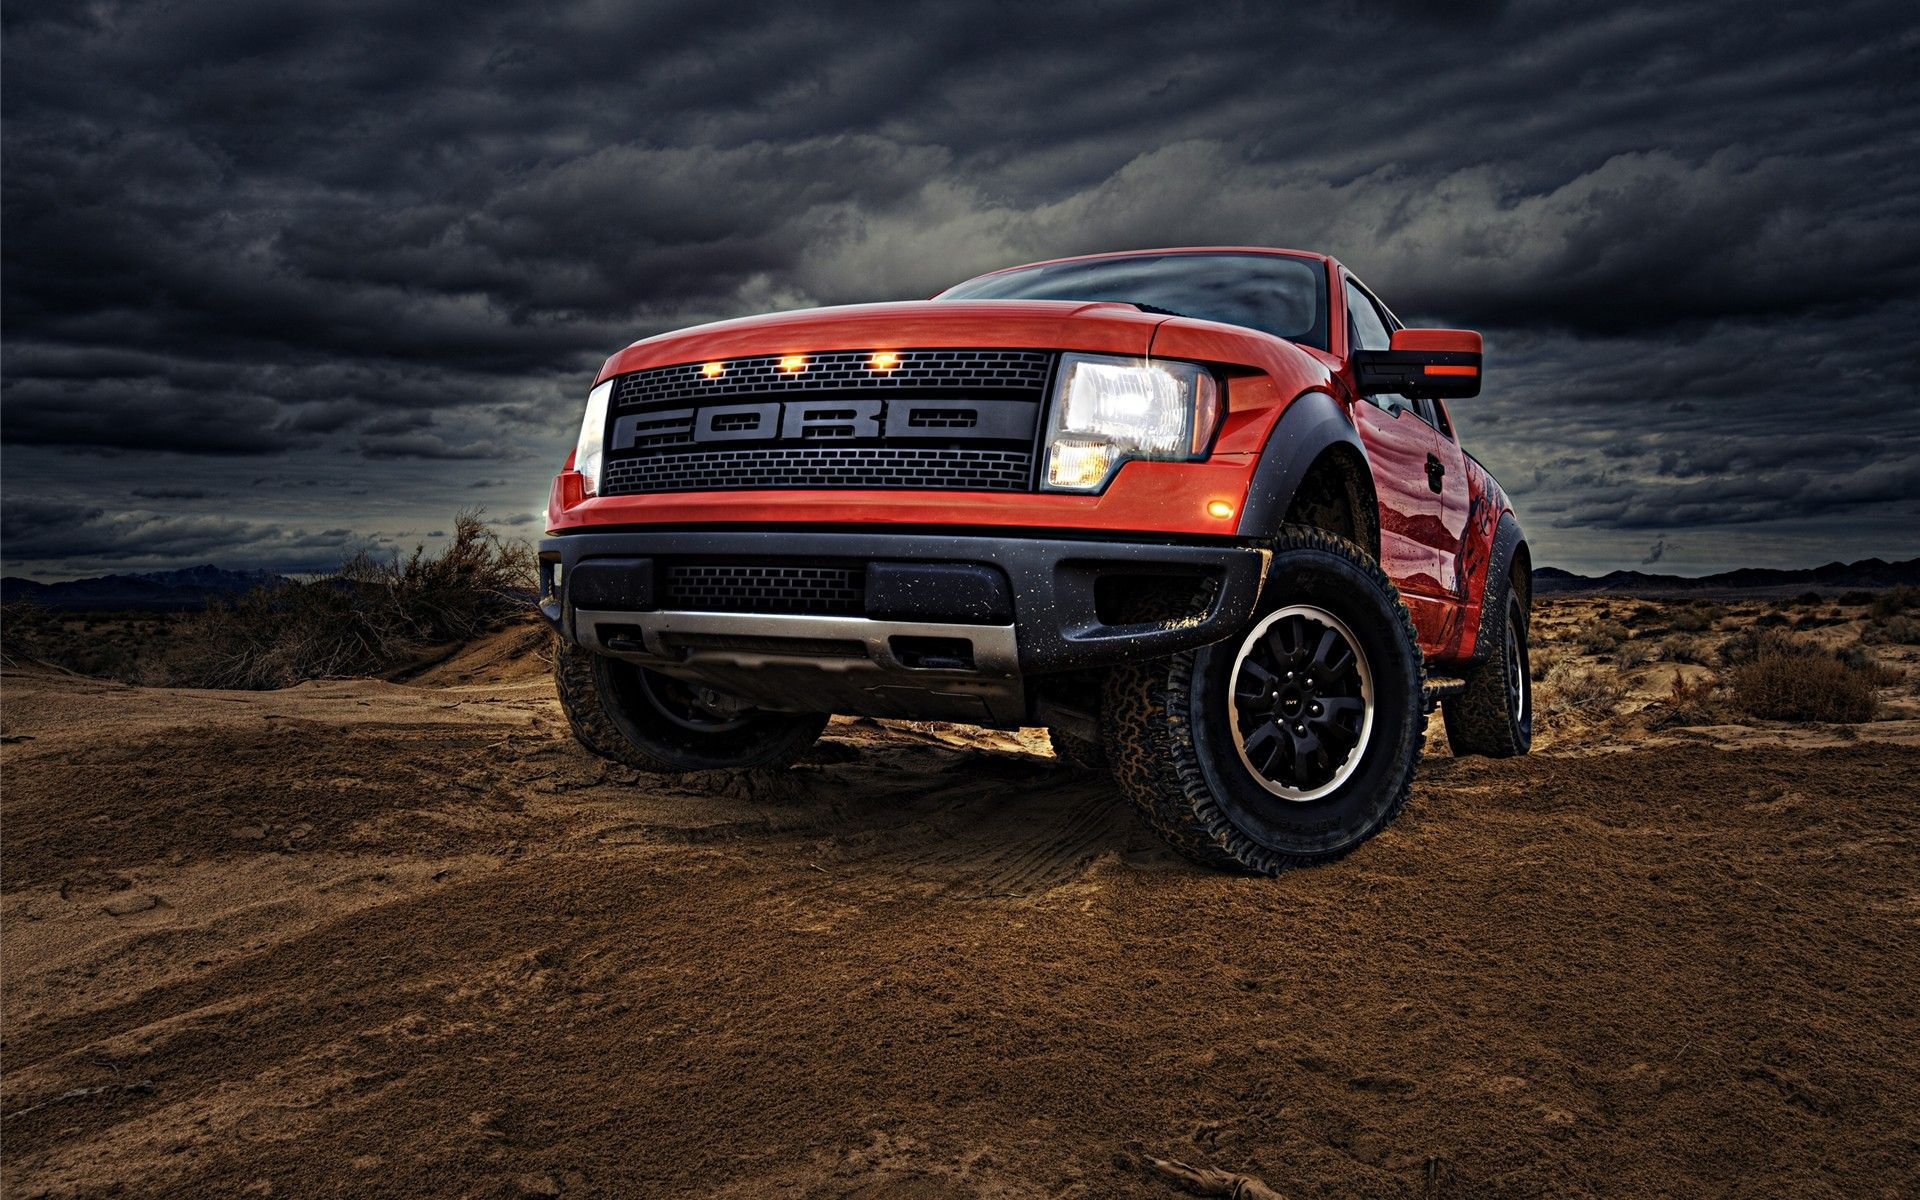 Cool Truck Backgrounds - Wallpaper Cave